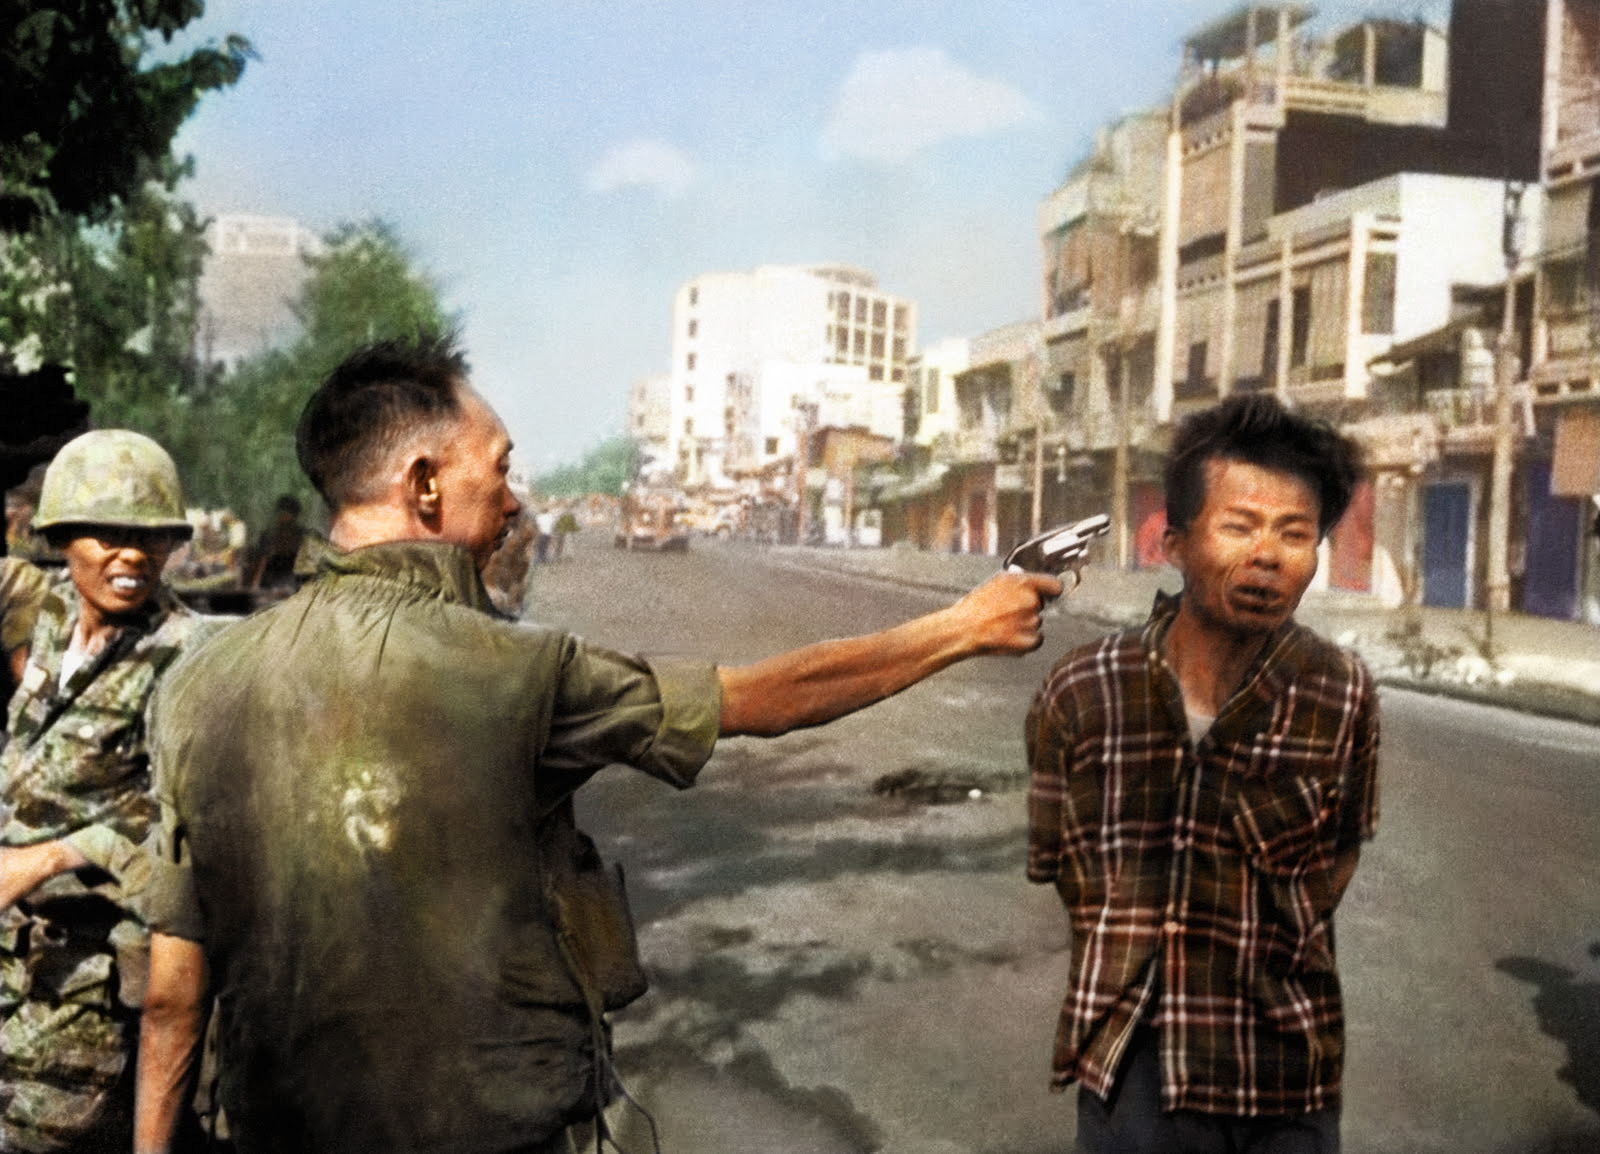 On Feb. 1, 1968, South Vietnamese Gen. Nguyen Ngoc Loan, chief of the national police, fires his pistol into the head of suspected Viet Cong officer Nguyen Van Lem, also known as Bay Lop, on a Saigon street, early in the Tet Offensive.